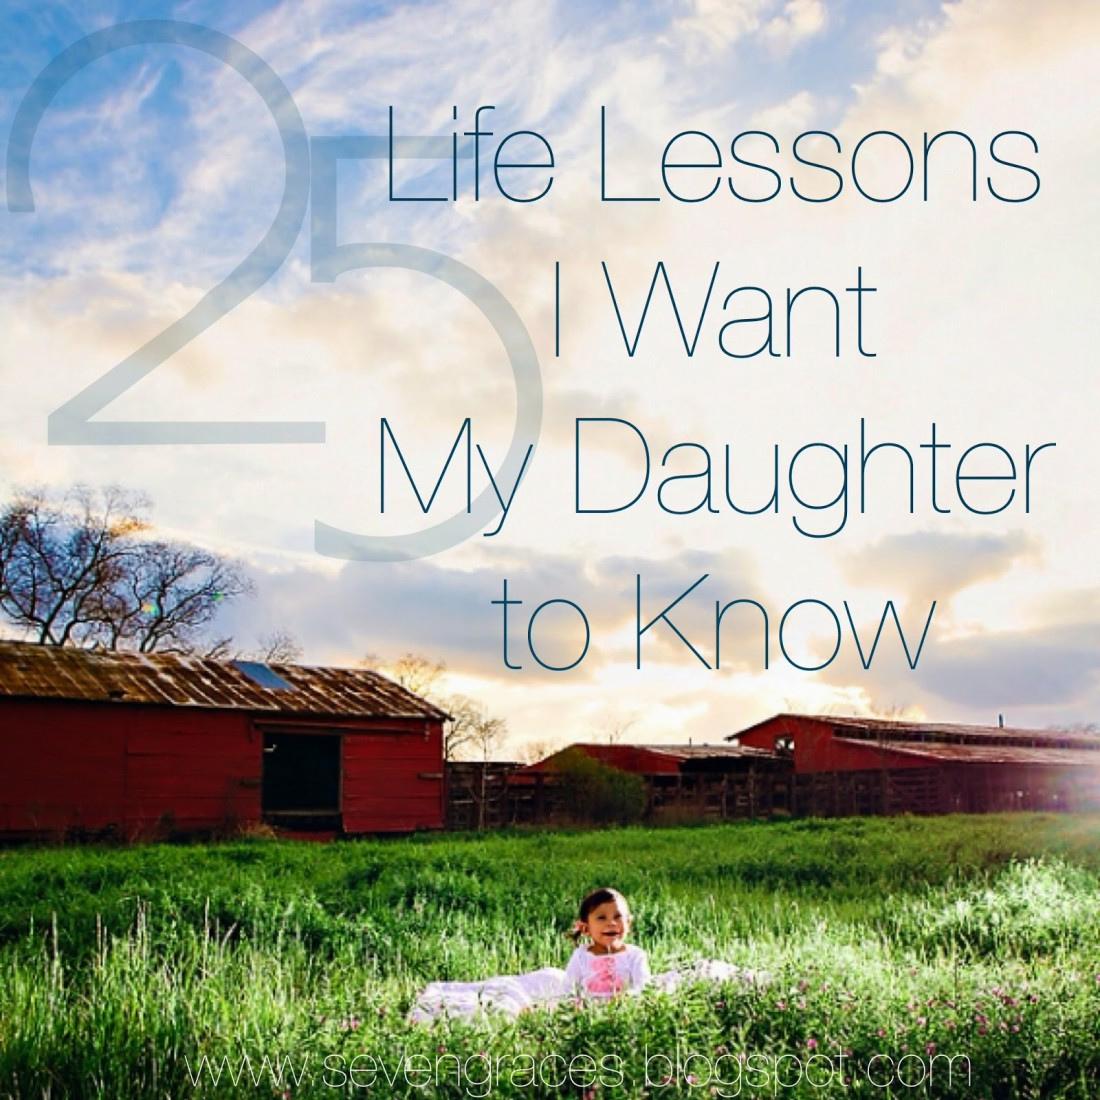 25 Life Lessons I Want My Daughter to Know